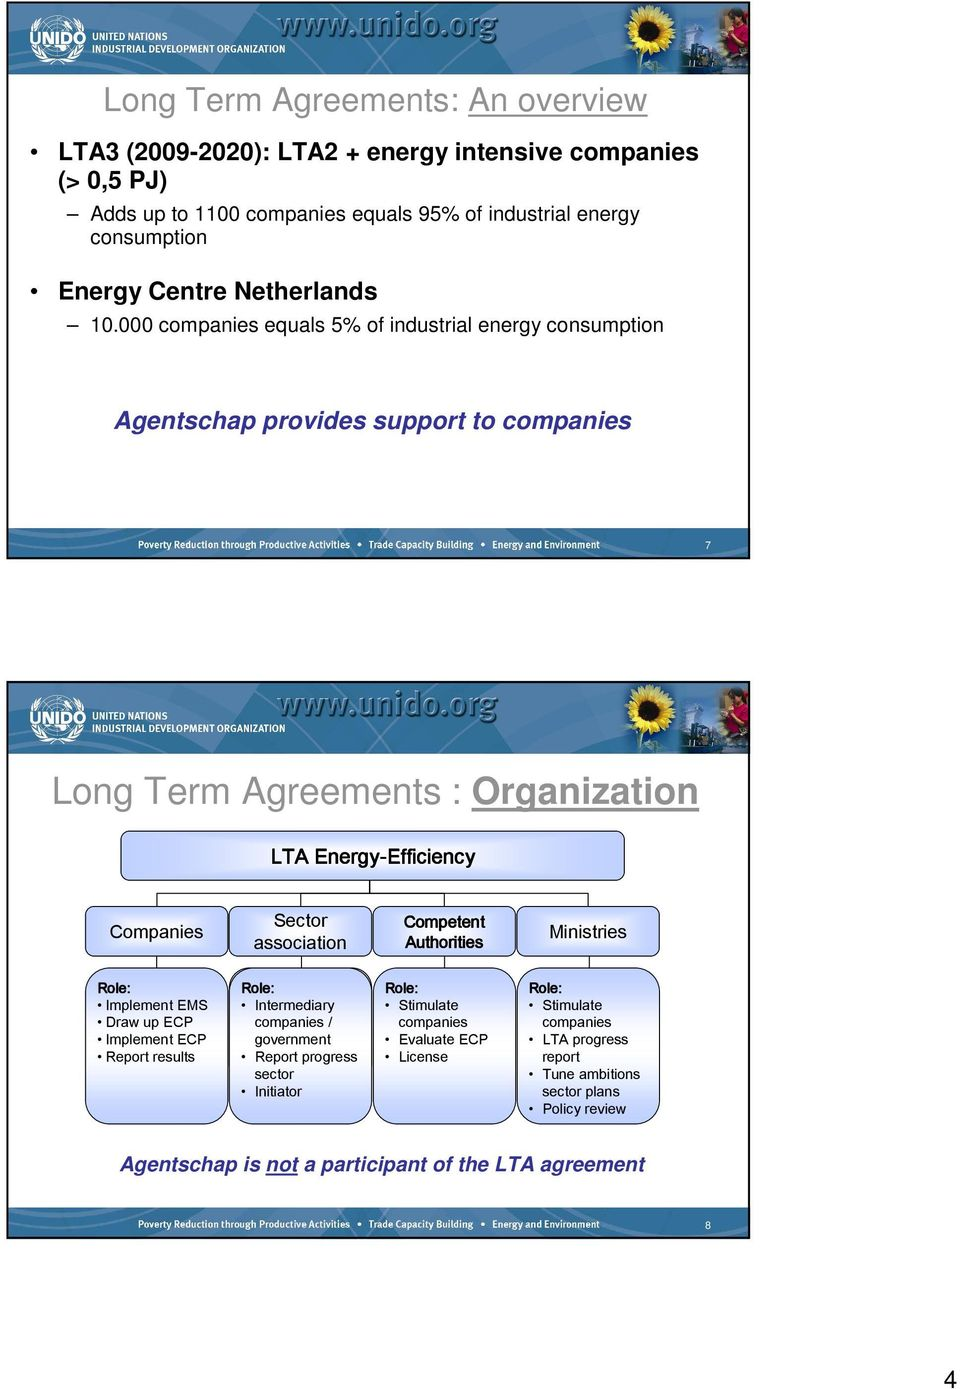 000 companies equals 5% of industrial energy consumption Agentschap provides support to companies 7 Long Term Agreements : Organization LTA Energy-Efficiency Efficiency Companies Sector